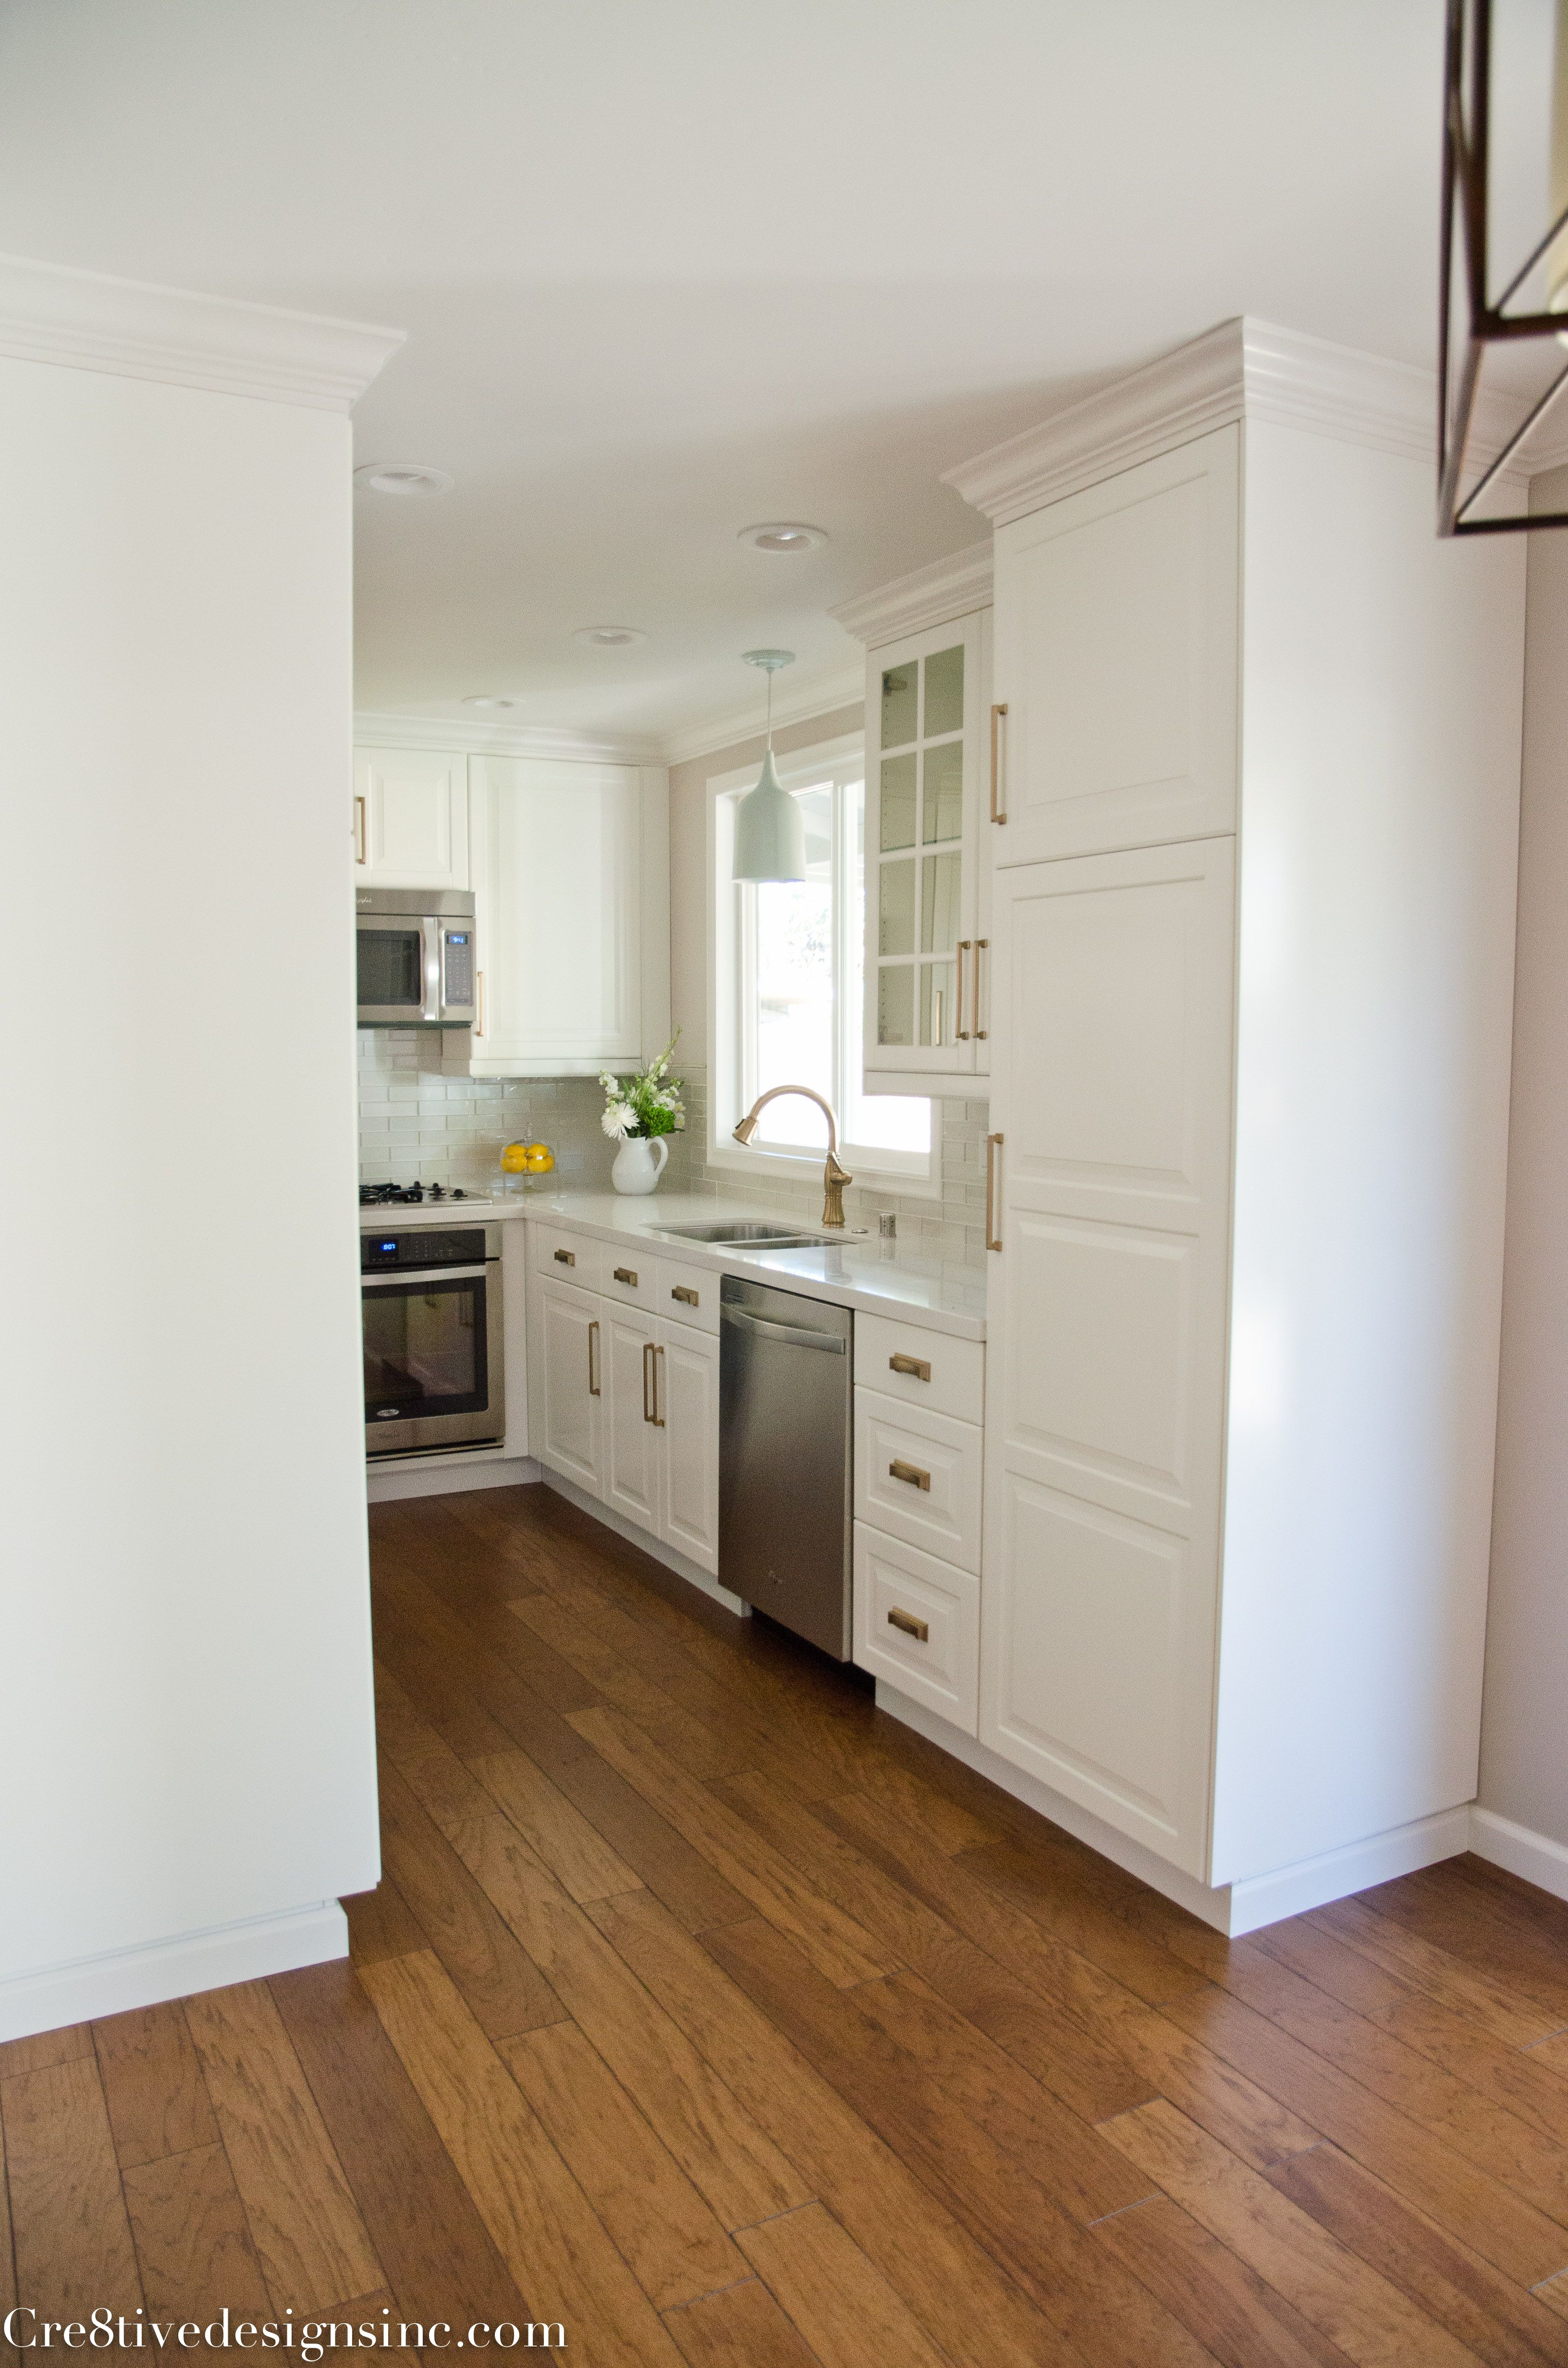 ikea kitchens - Yahoo Search Results Yahoo Canada Image Search ...